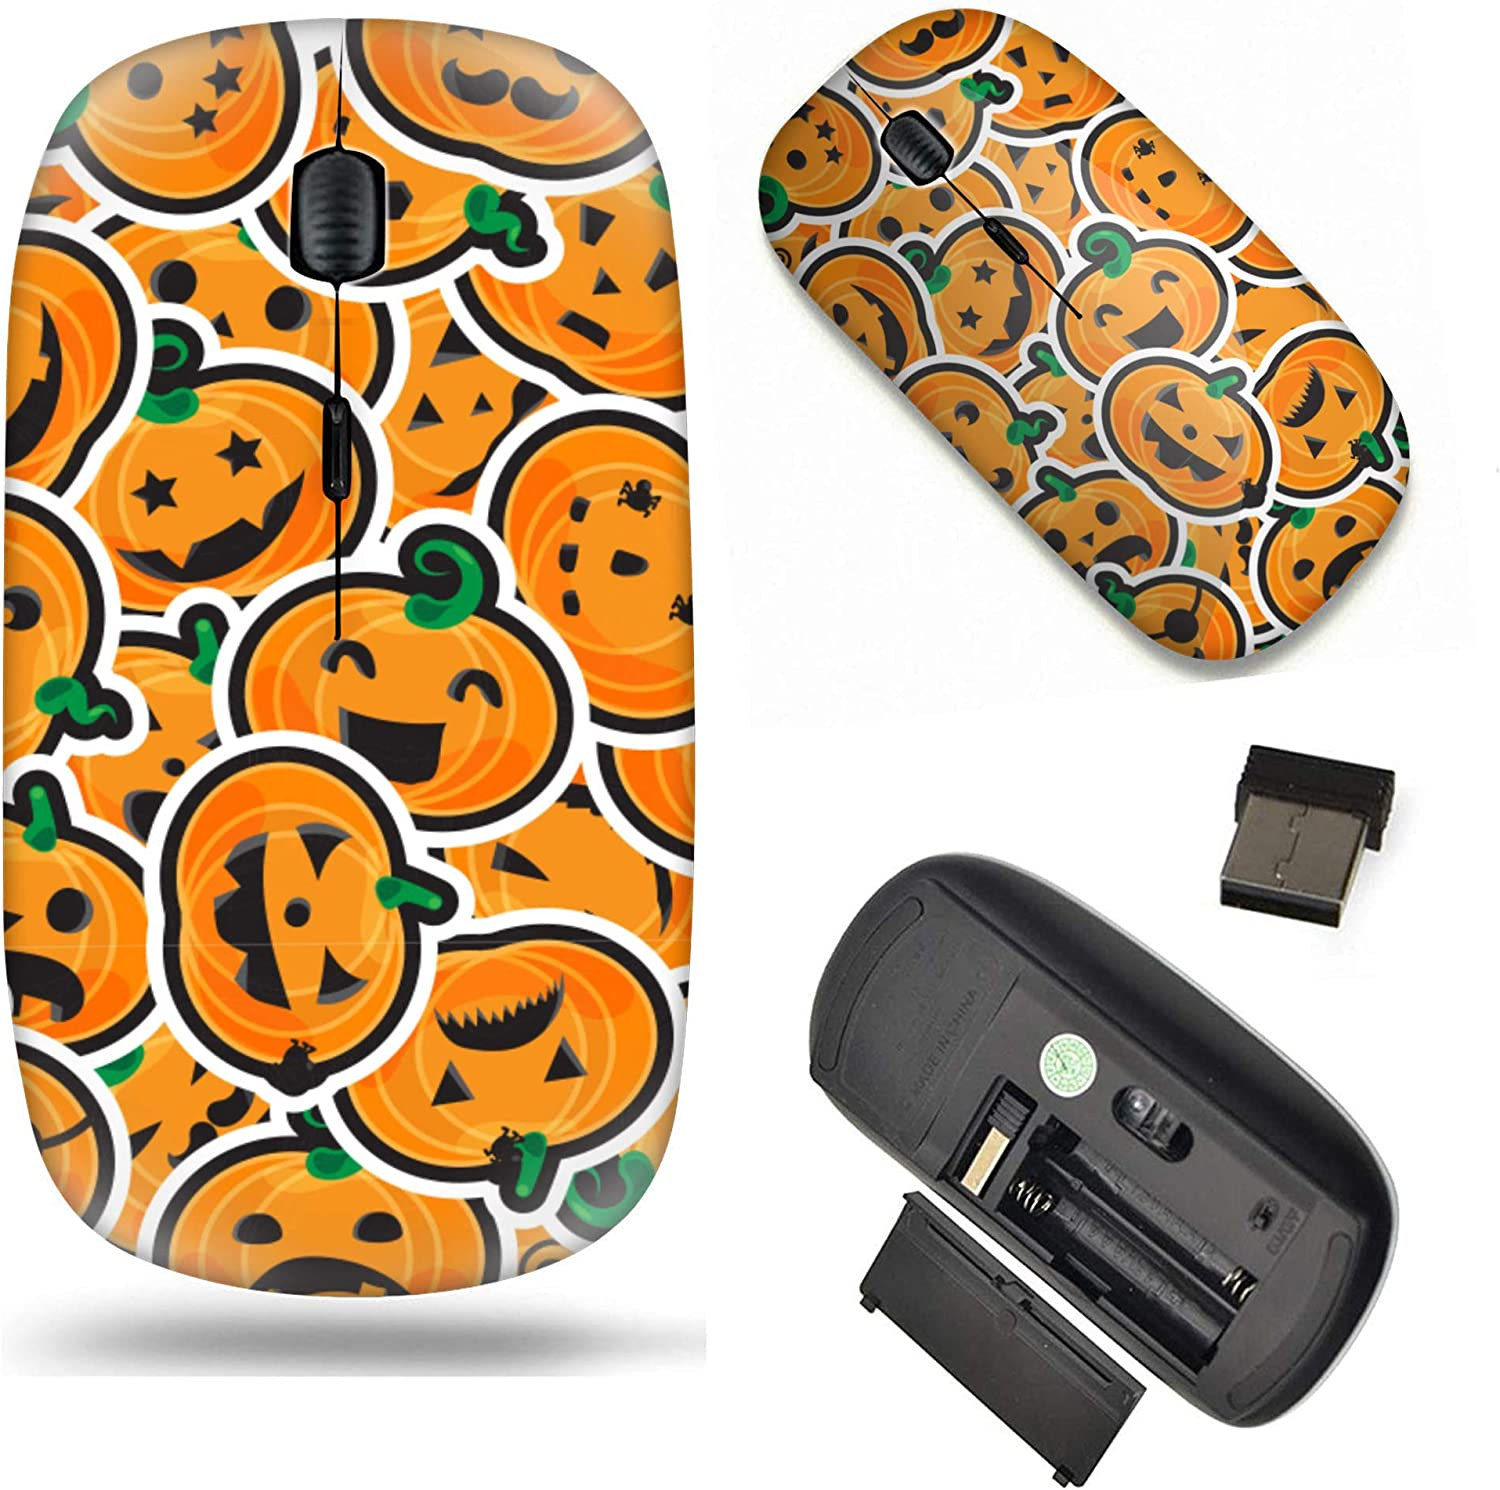 Unique Pattern Optical Mice Mobile Wireless Mouse 2.4G Portable for Notebook Laptop Computer PC Funny Halloween Pumpkin Doodle